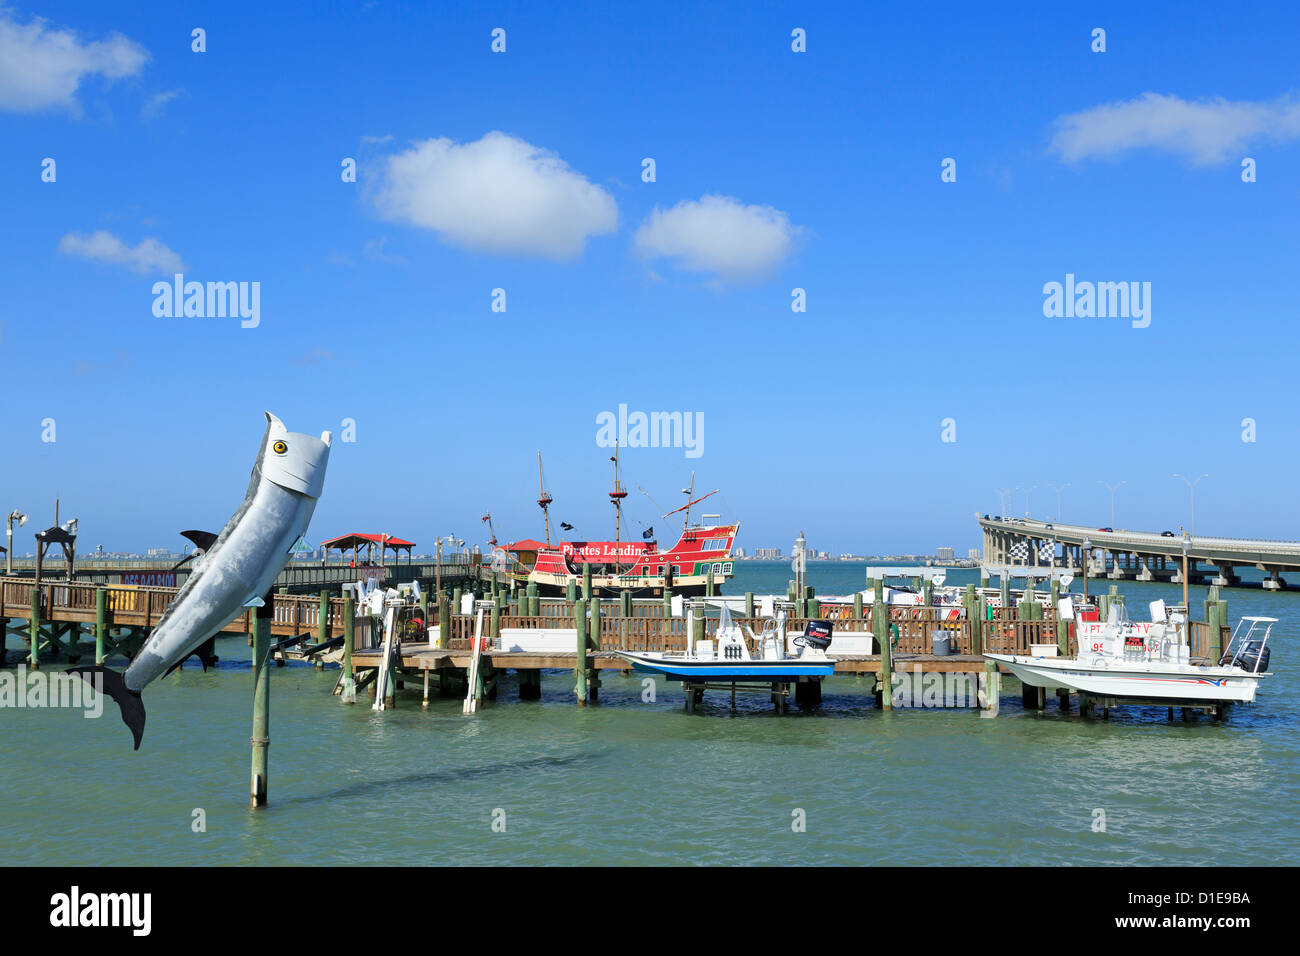 Fishing pier in Port Isabel, Texas, United States of America, North America - Stock Image